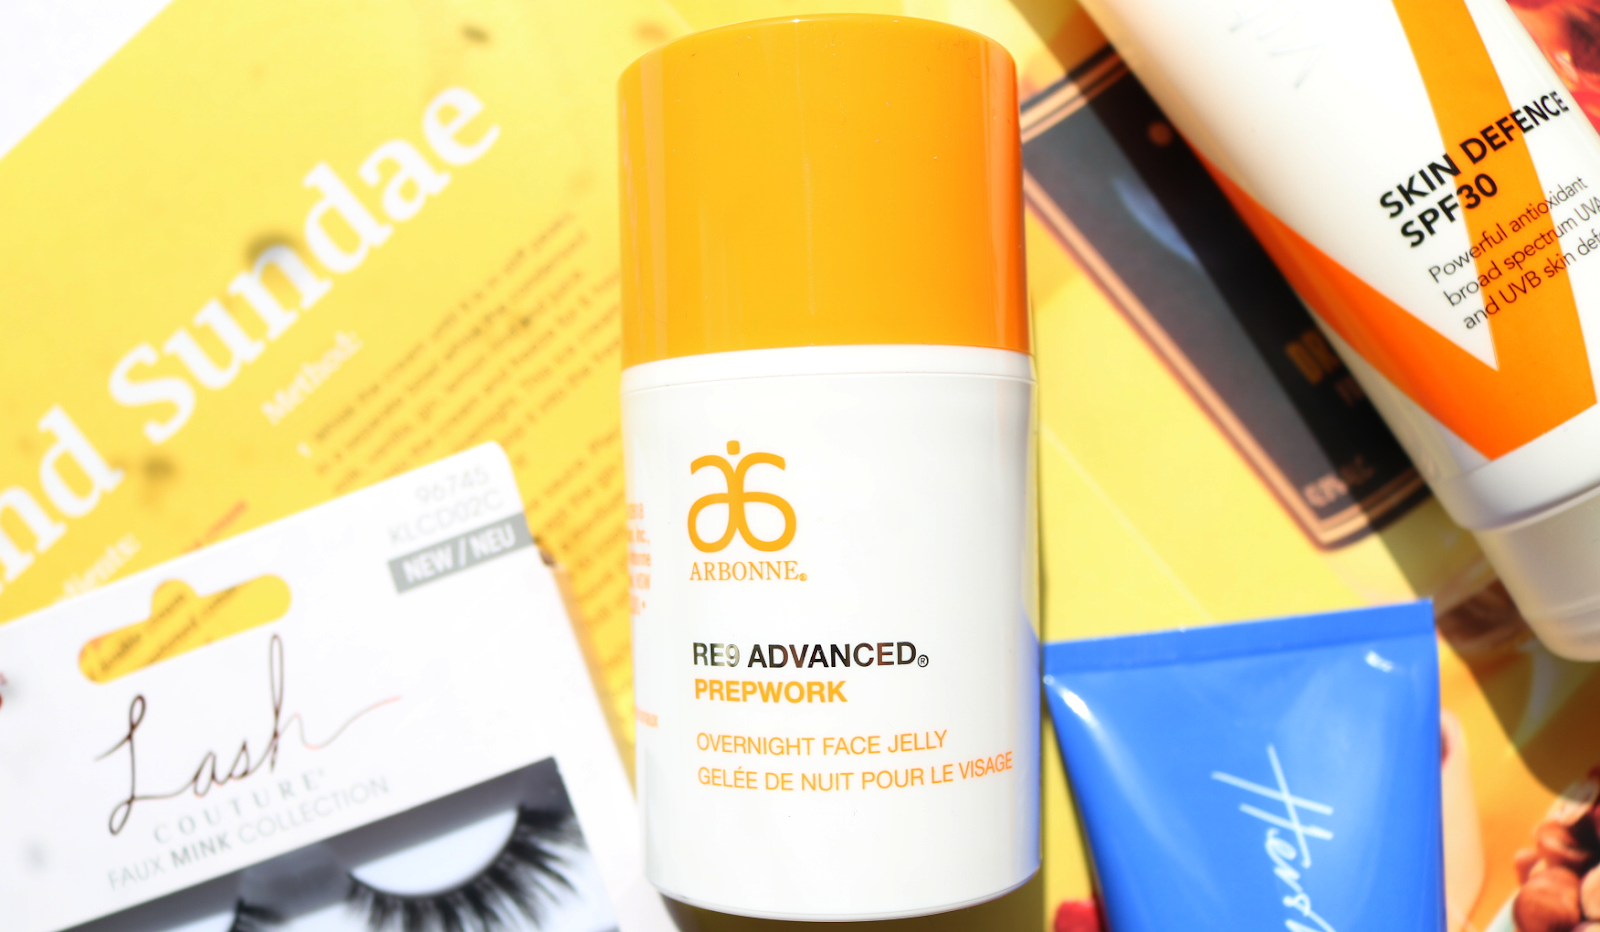 Arbonne RE9 Advanced Prepwork Overnight Face Jelly